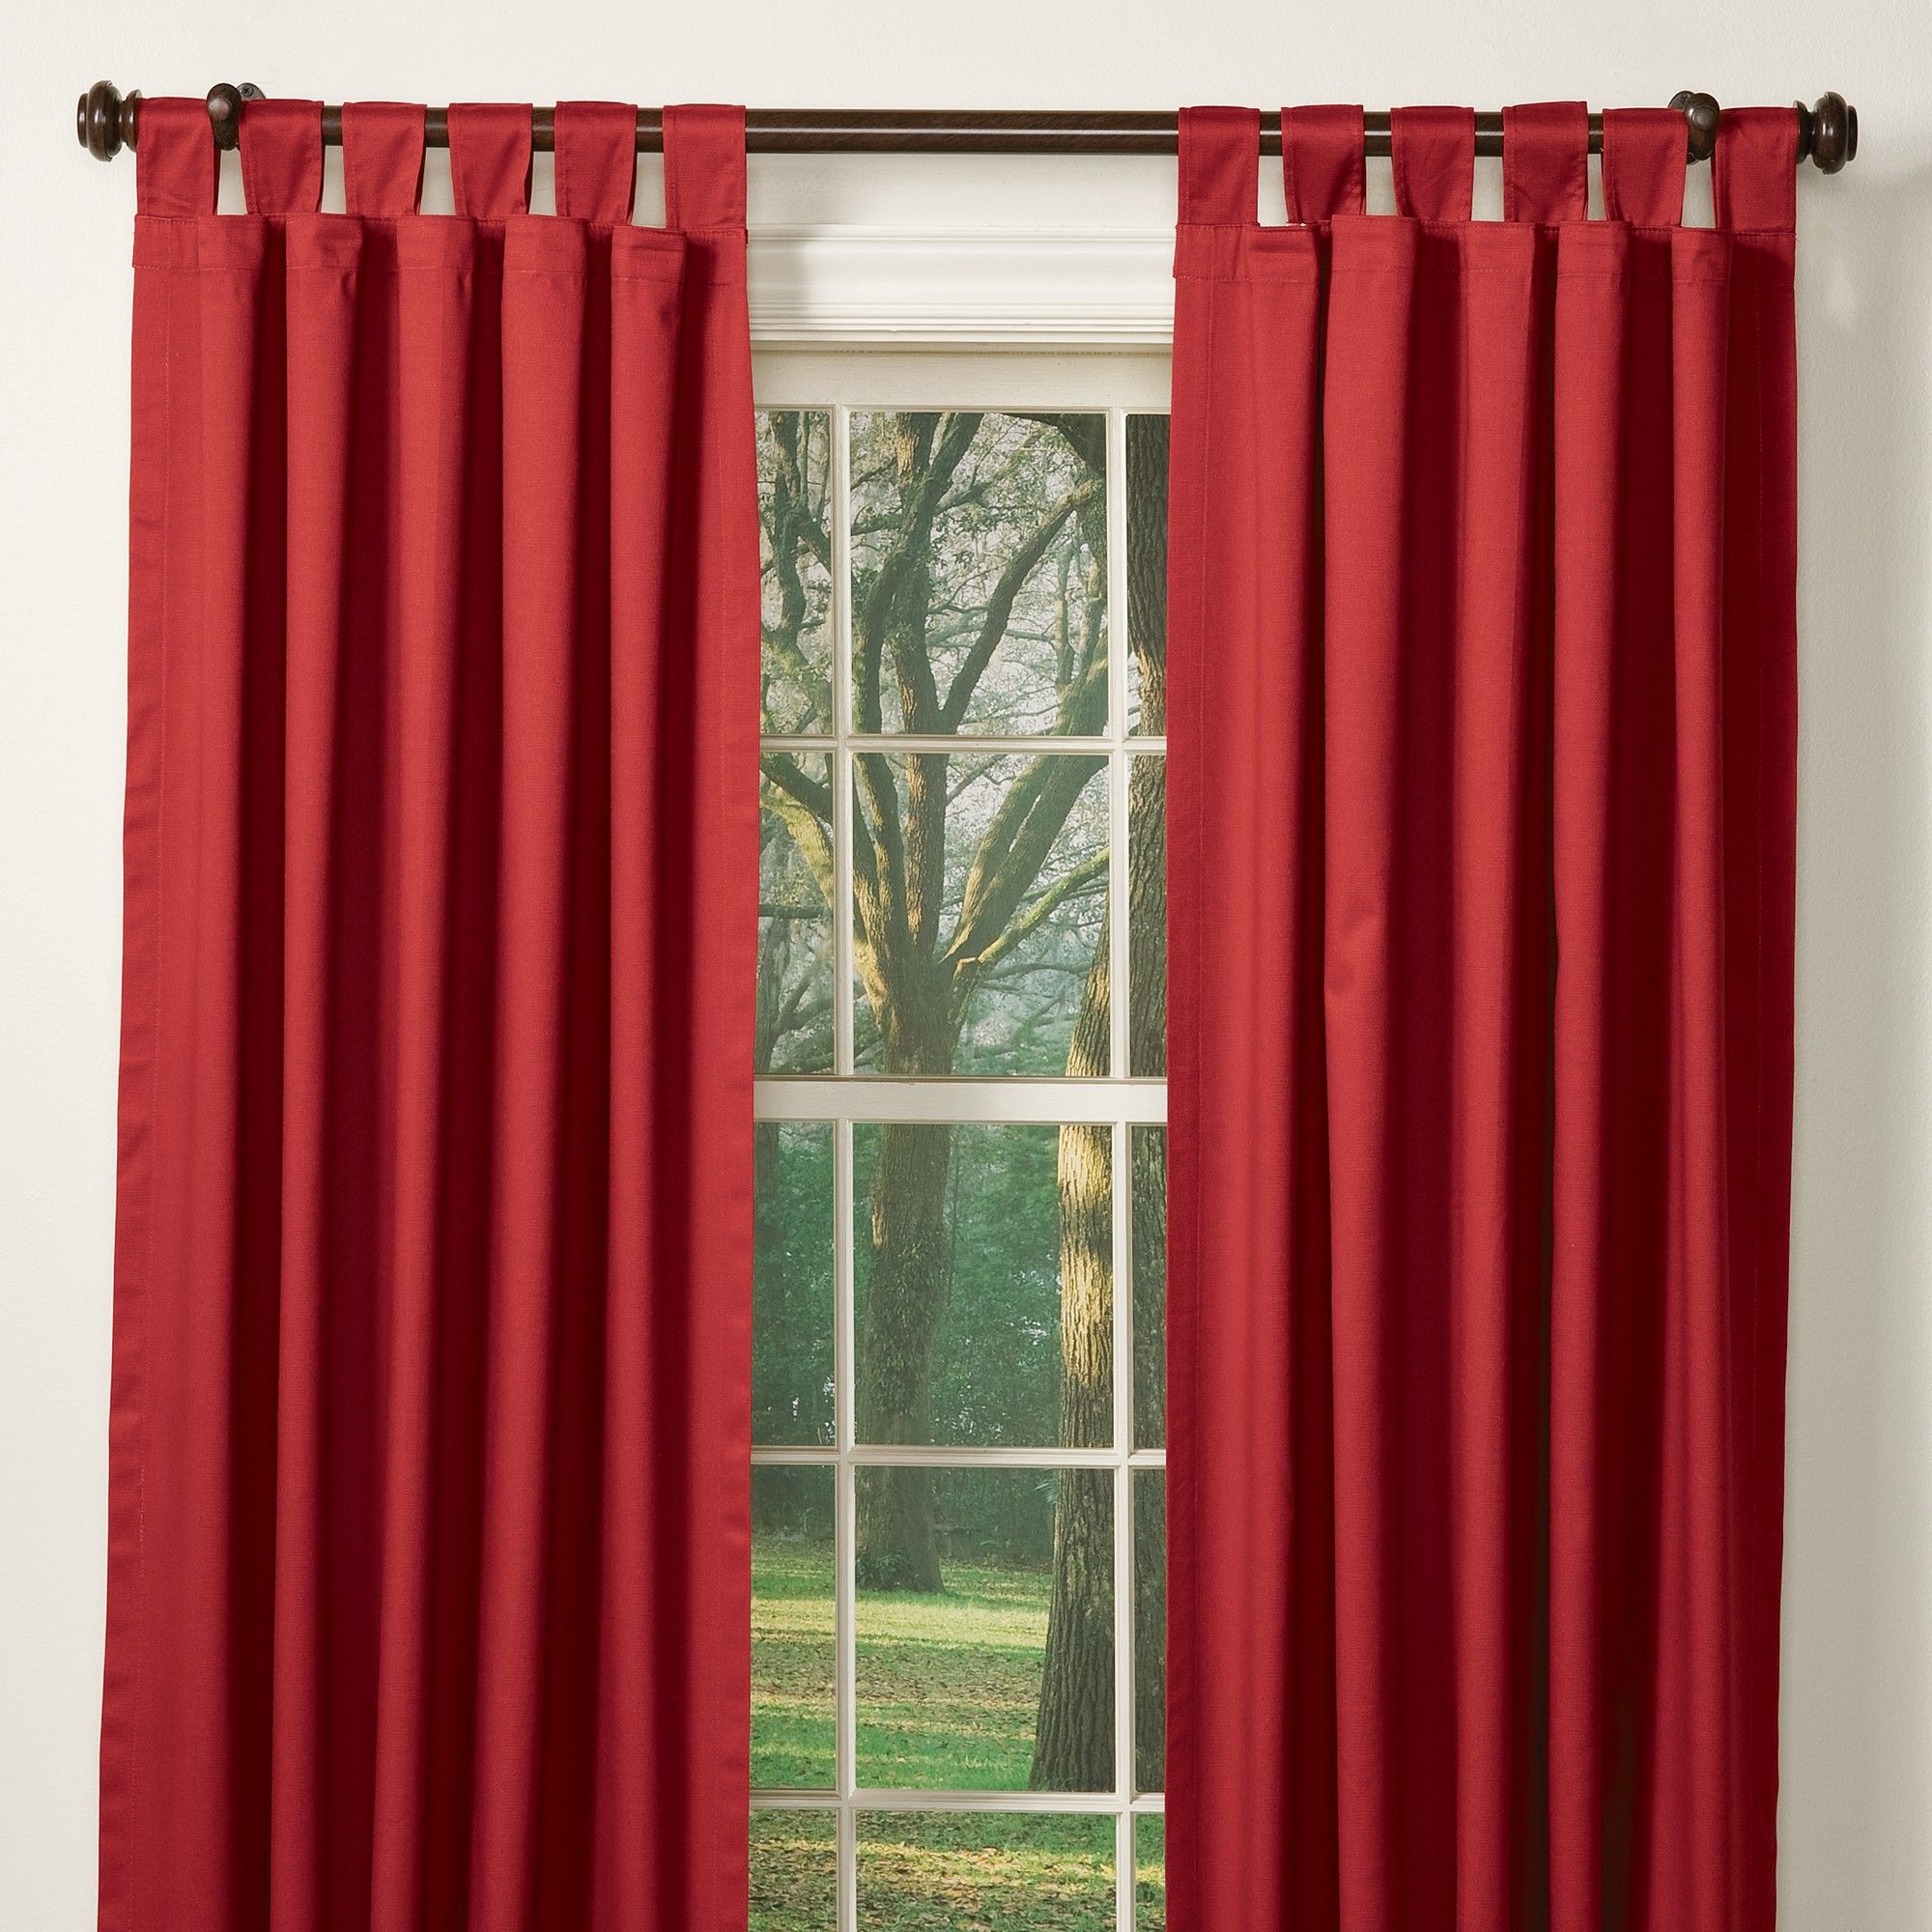 drapes design interior touches treatments doors window decor jcpenney and door french finishing patio for coverings